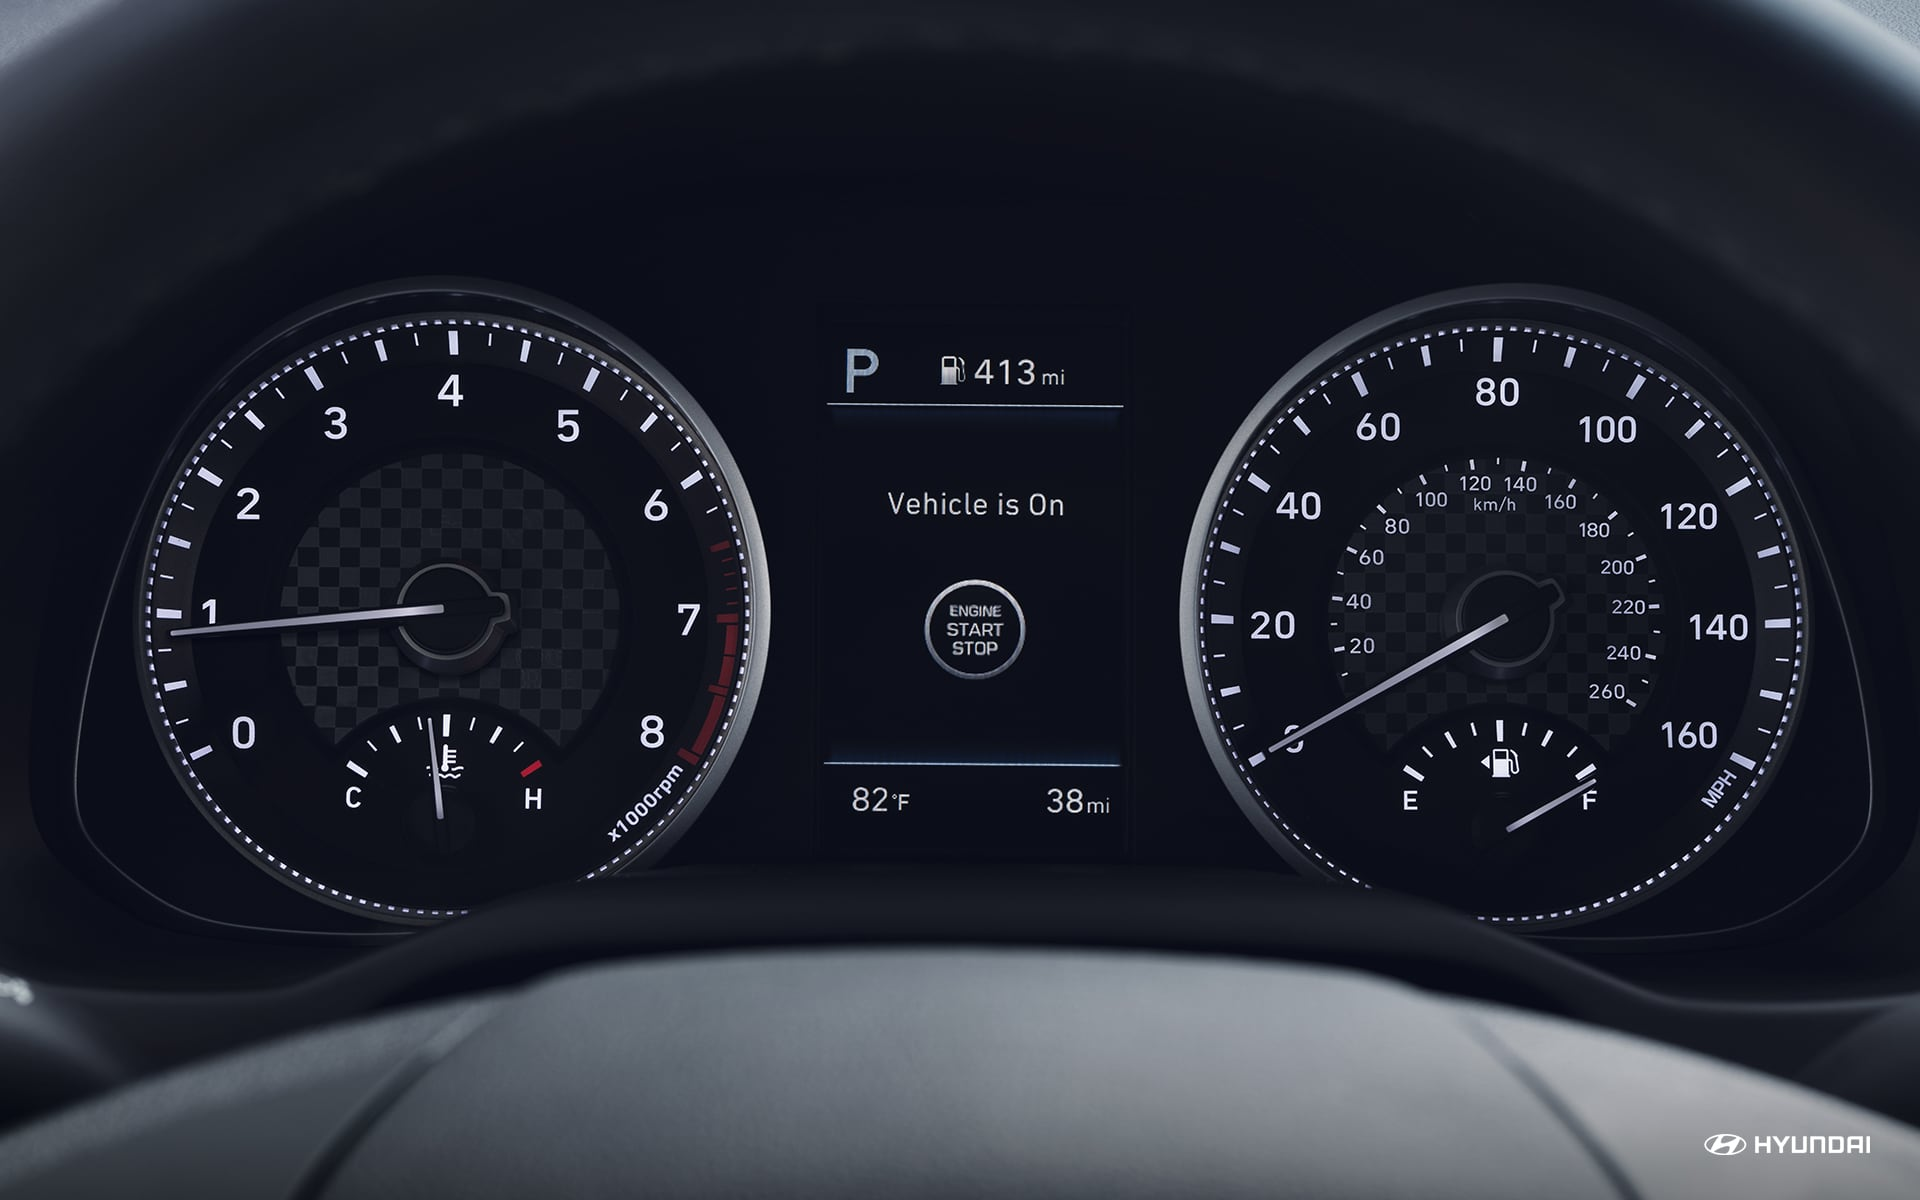 Instrument Cluster in the 2019 Hyundai Elantra